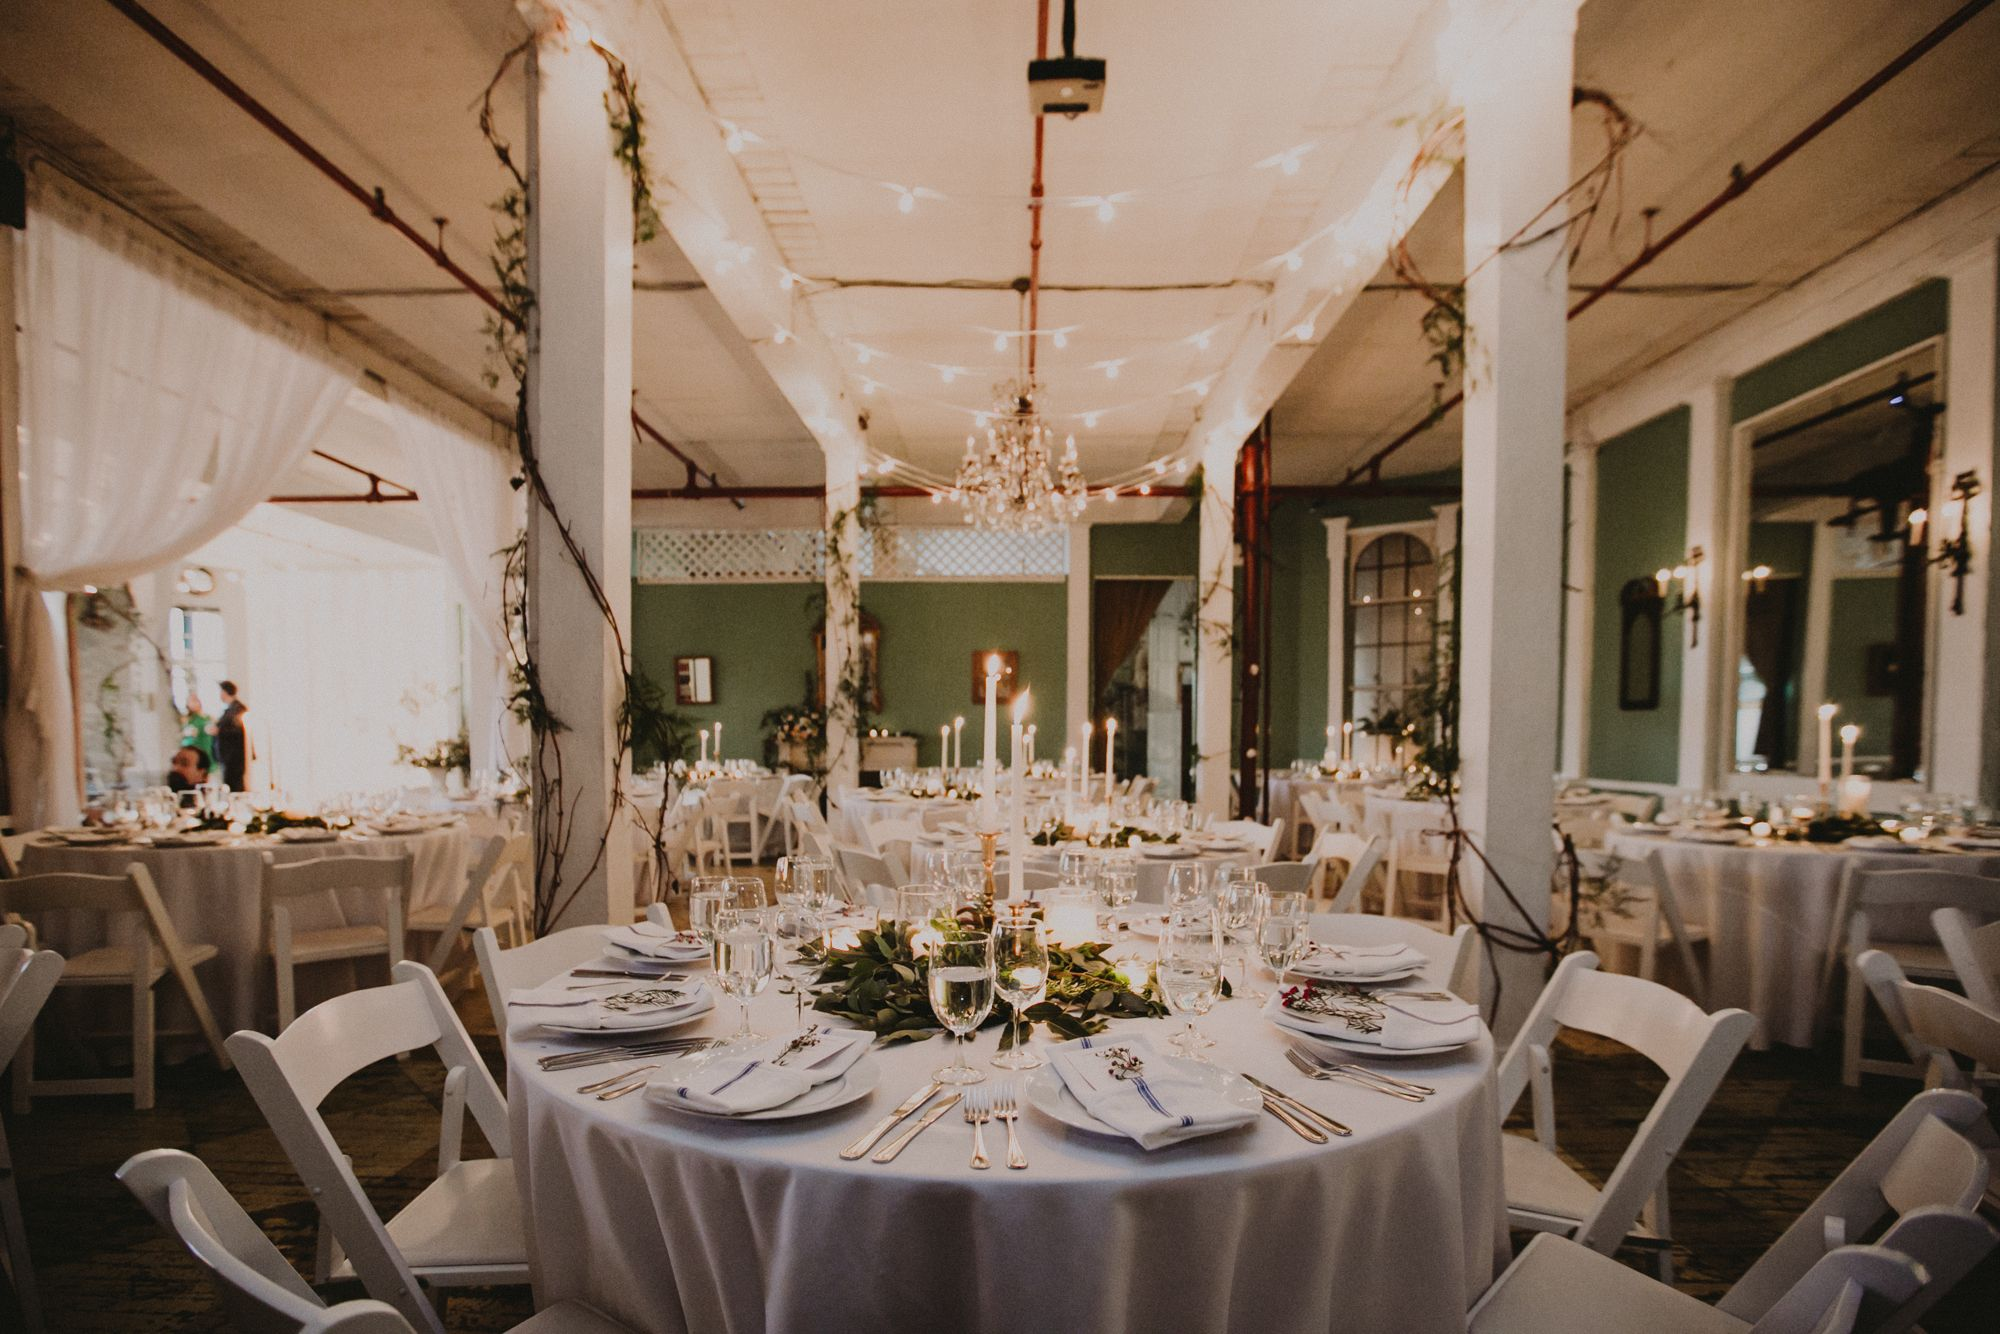 Candlelit Reception Rosemary herb place setting Chandelier ...